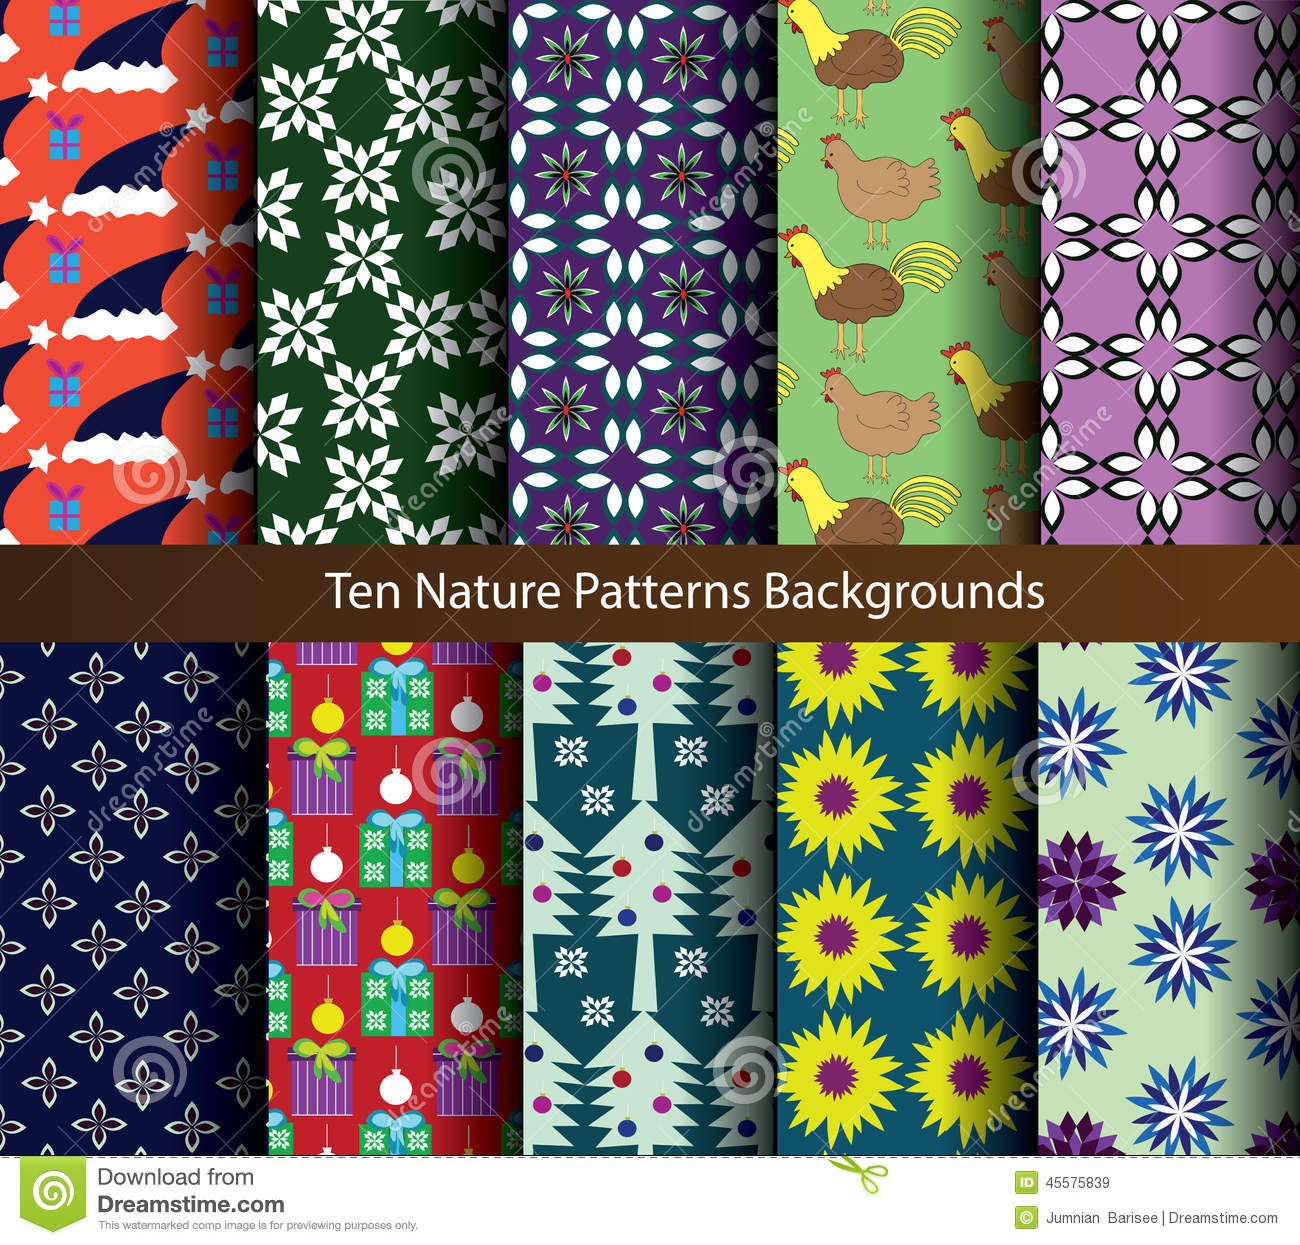 Ten patterns nature holiday backgrounds.